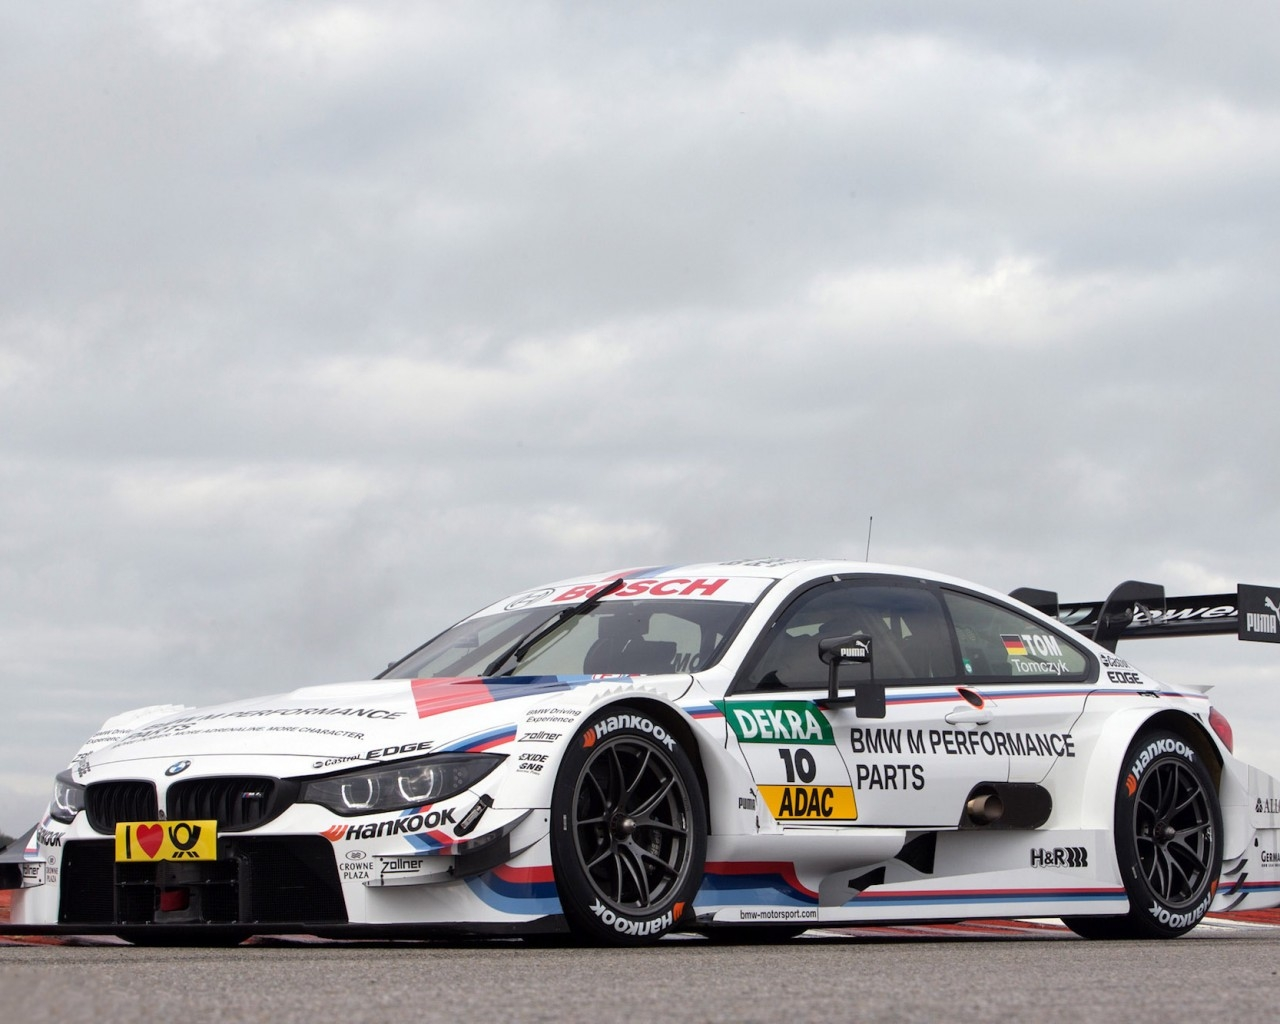 bmw-m-dtm-Picture-Bmw-M-Dtm-Cars-Images-within-Bmw-M-wallpaper-wpc5801232